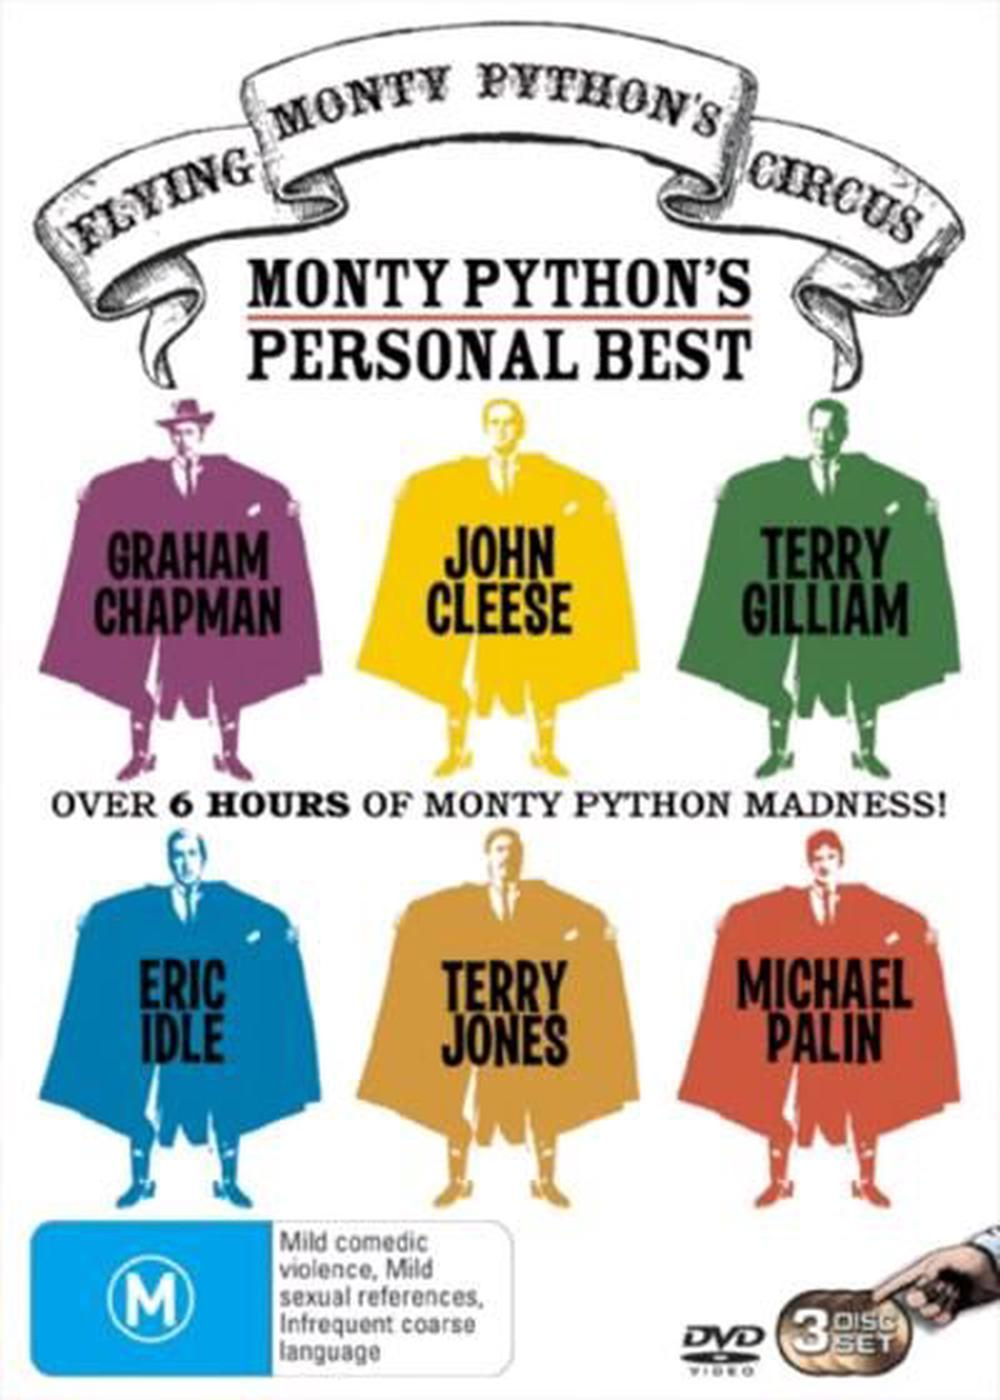 Monty Python S Flying Circus The Personal Best Collection Dvd Buy Online At The Nile